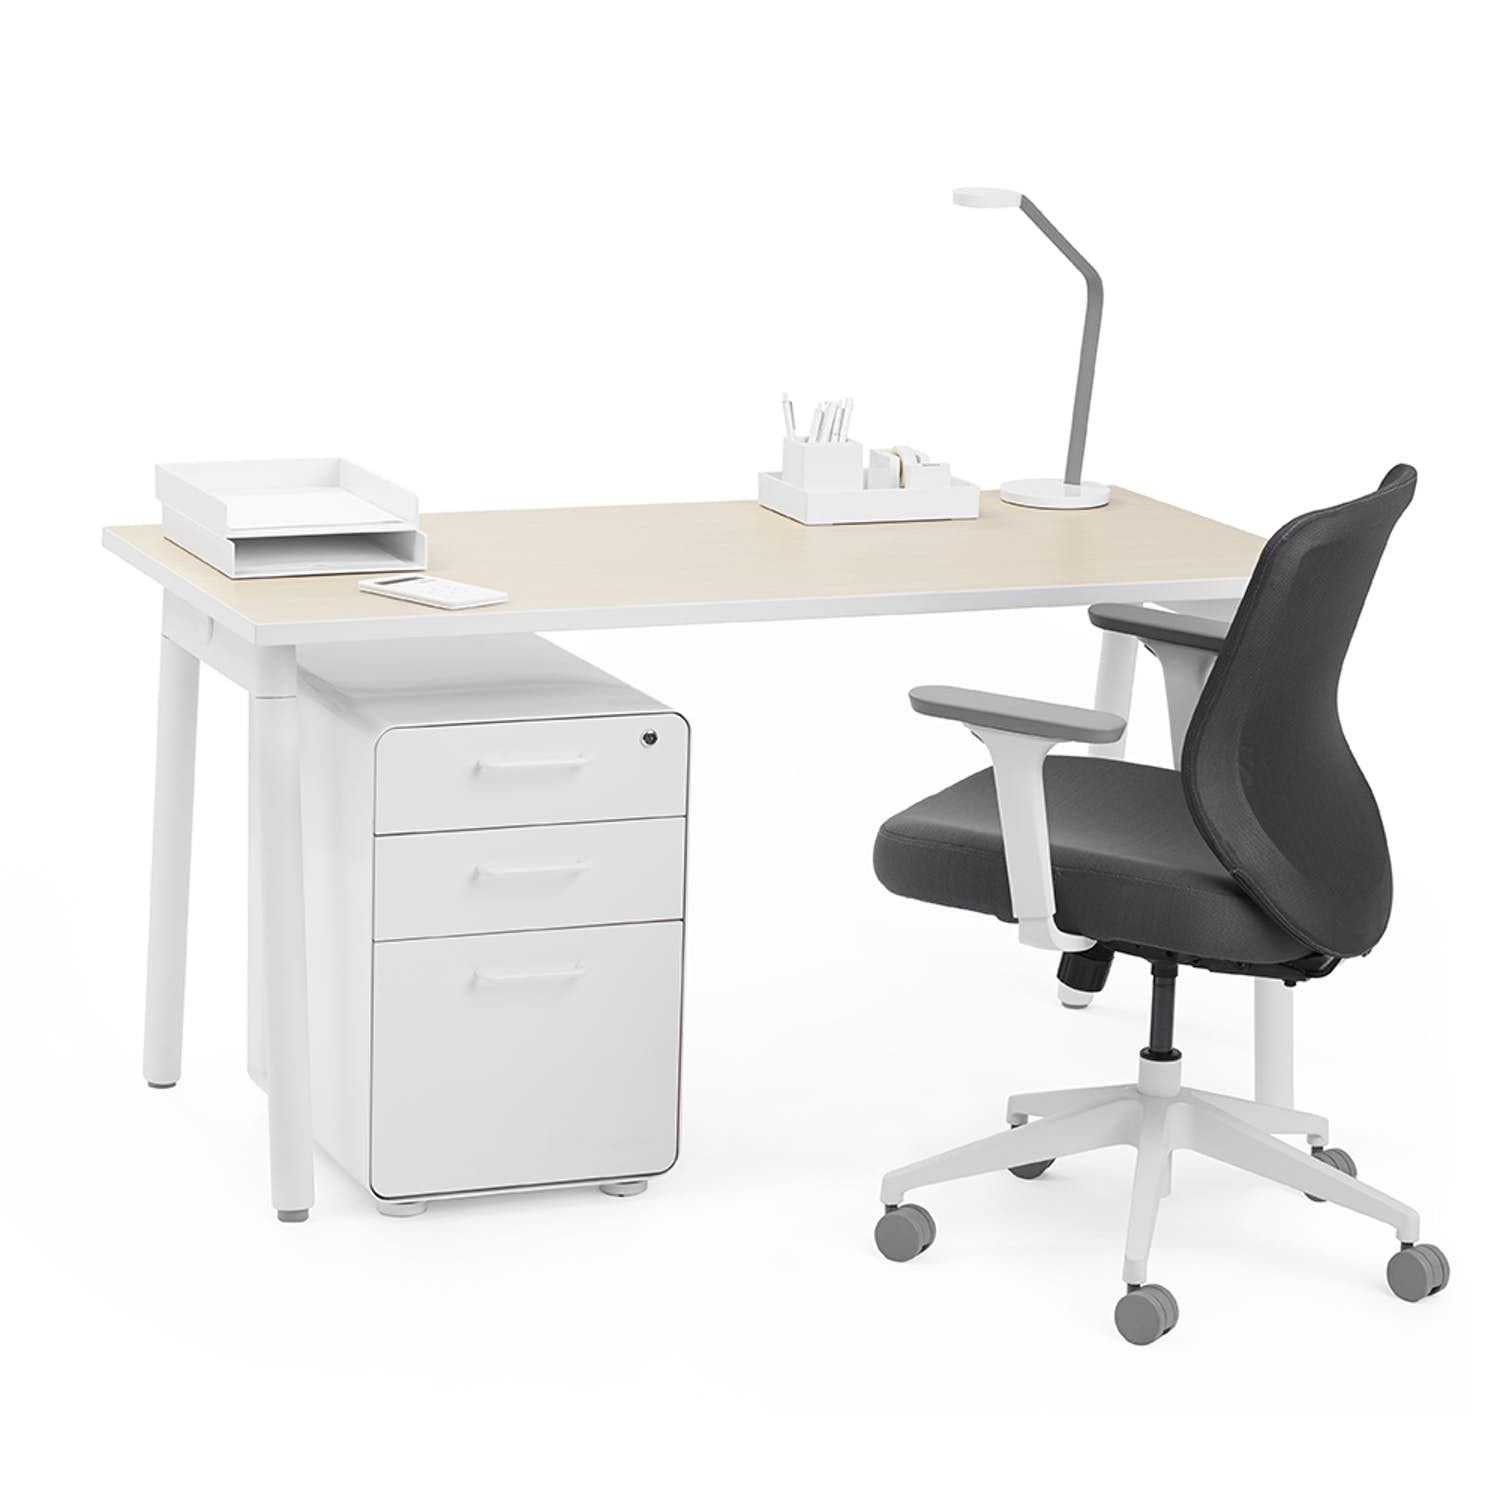 Series A Single Desk For 1 Light Oak 57 White Legs Light Oak